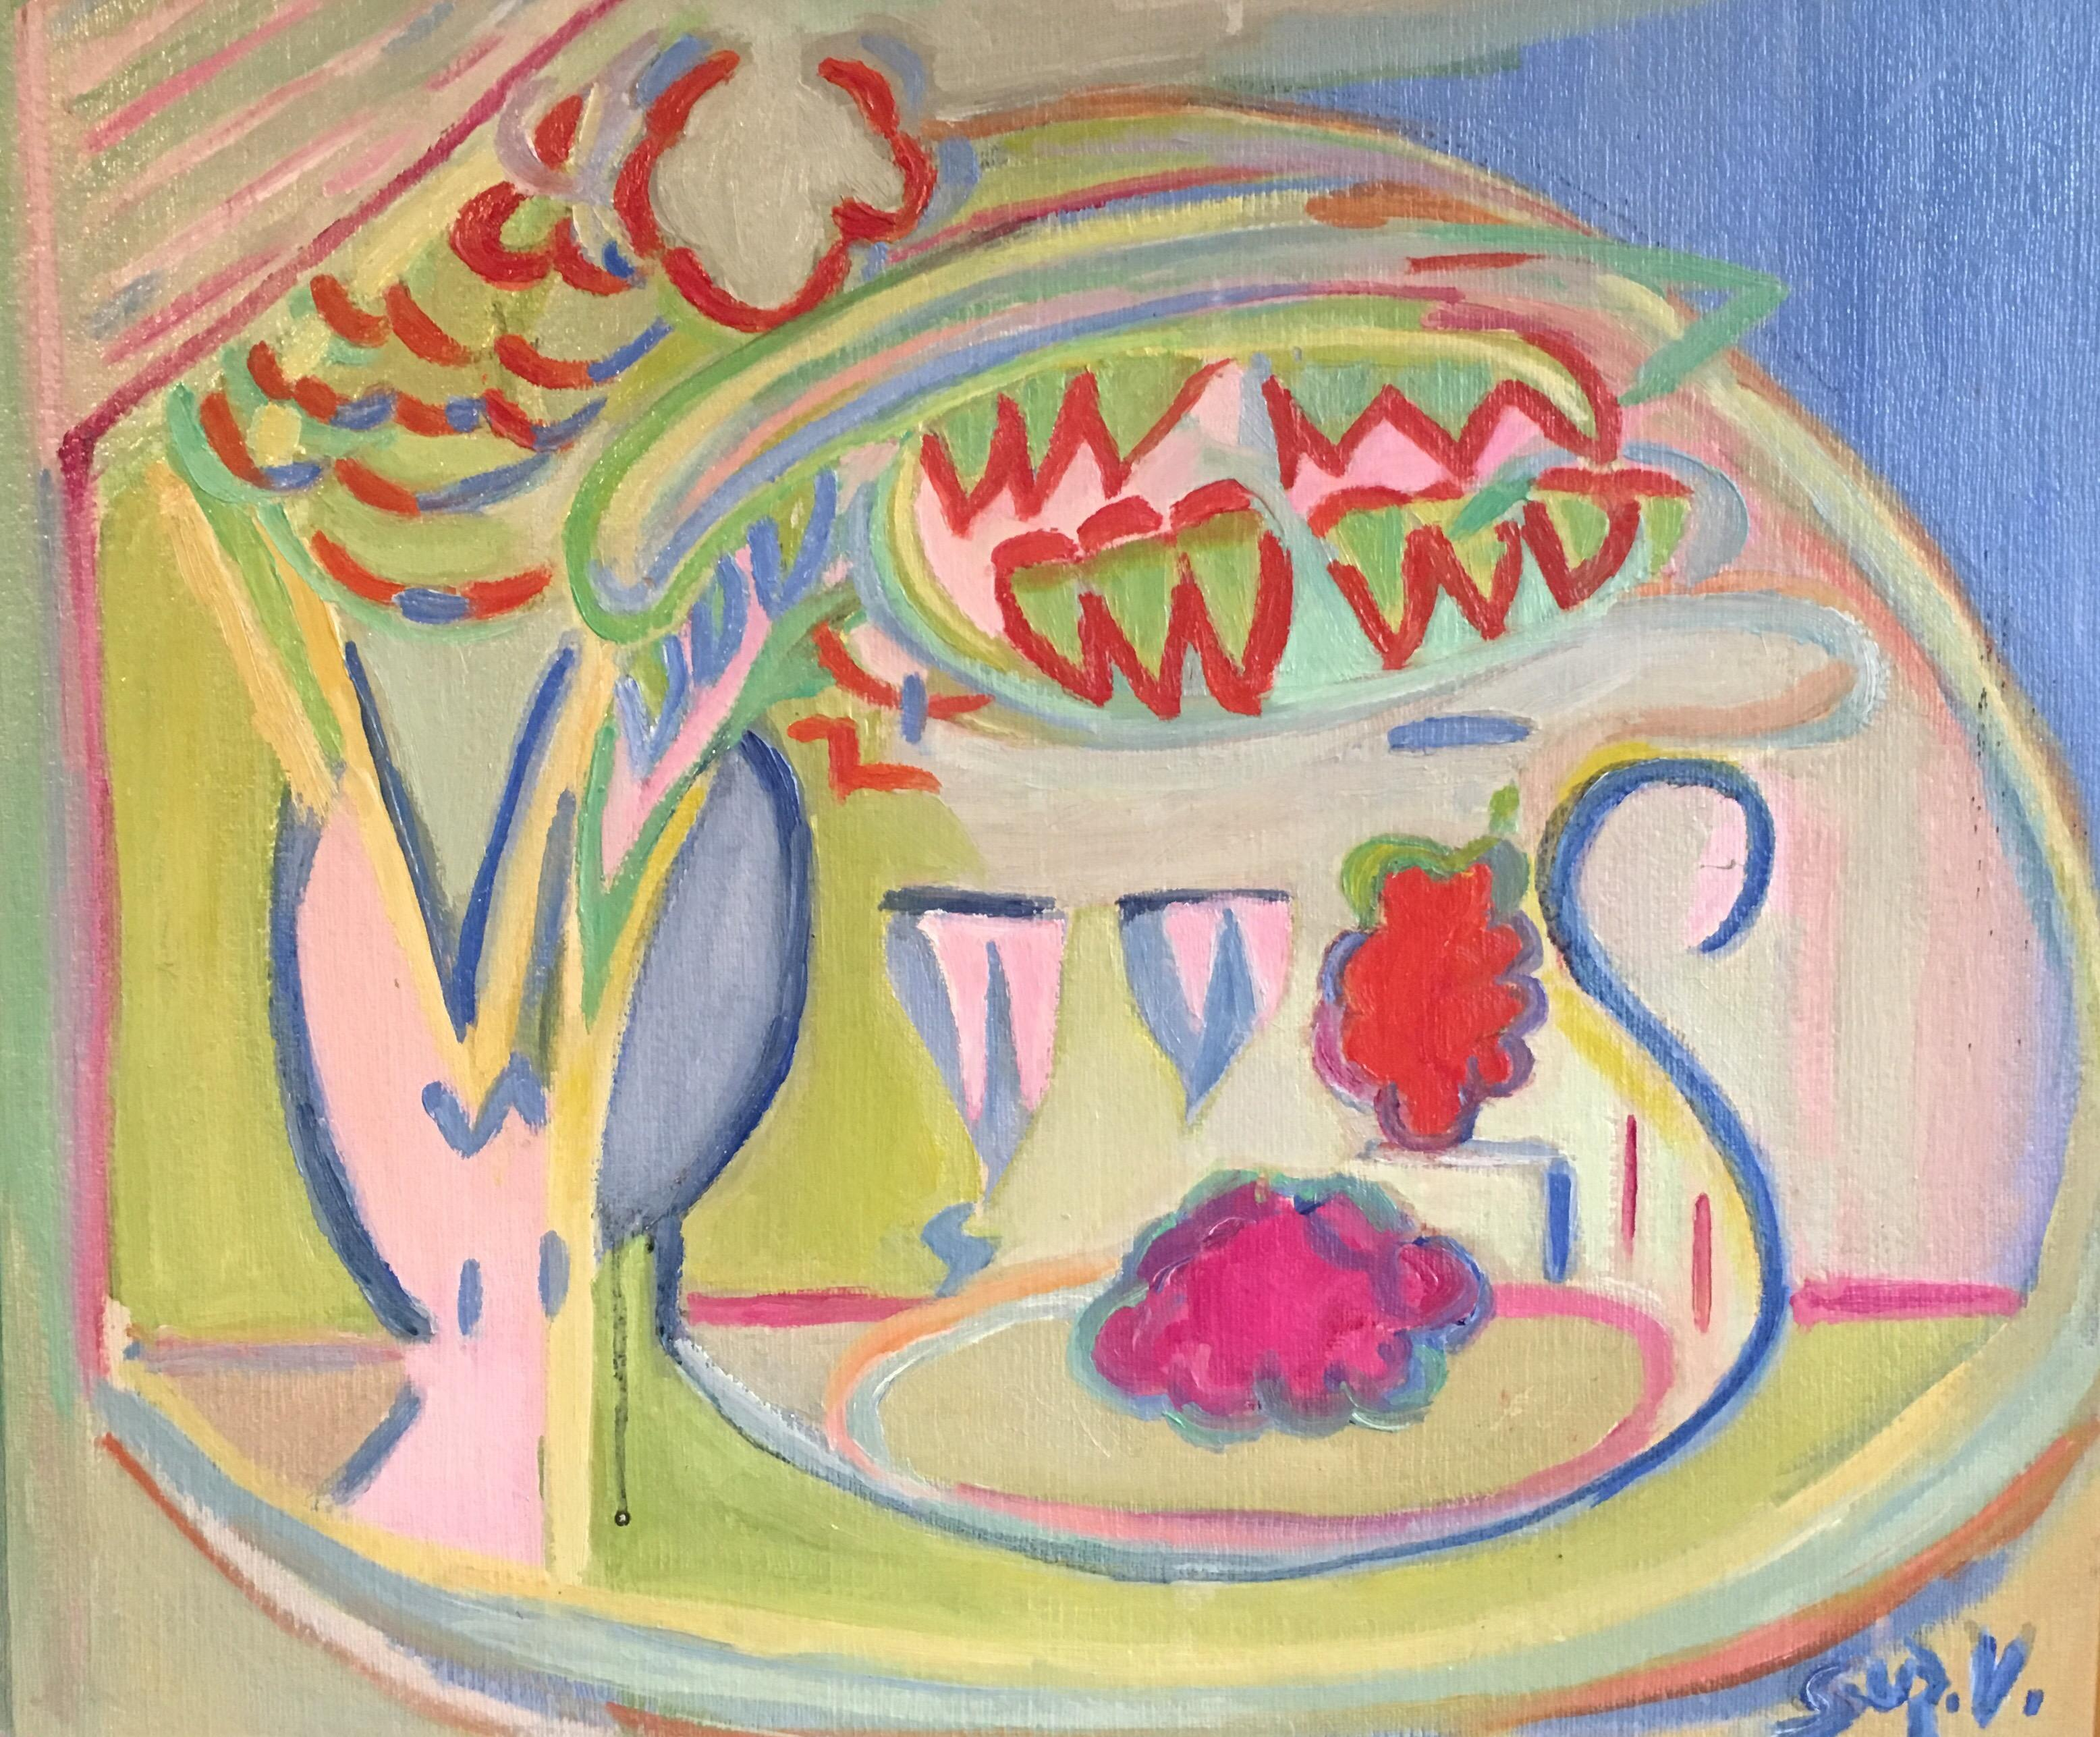 'Verni' Colourful 1970s Abstract Oil Painting